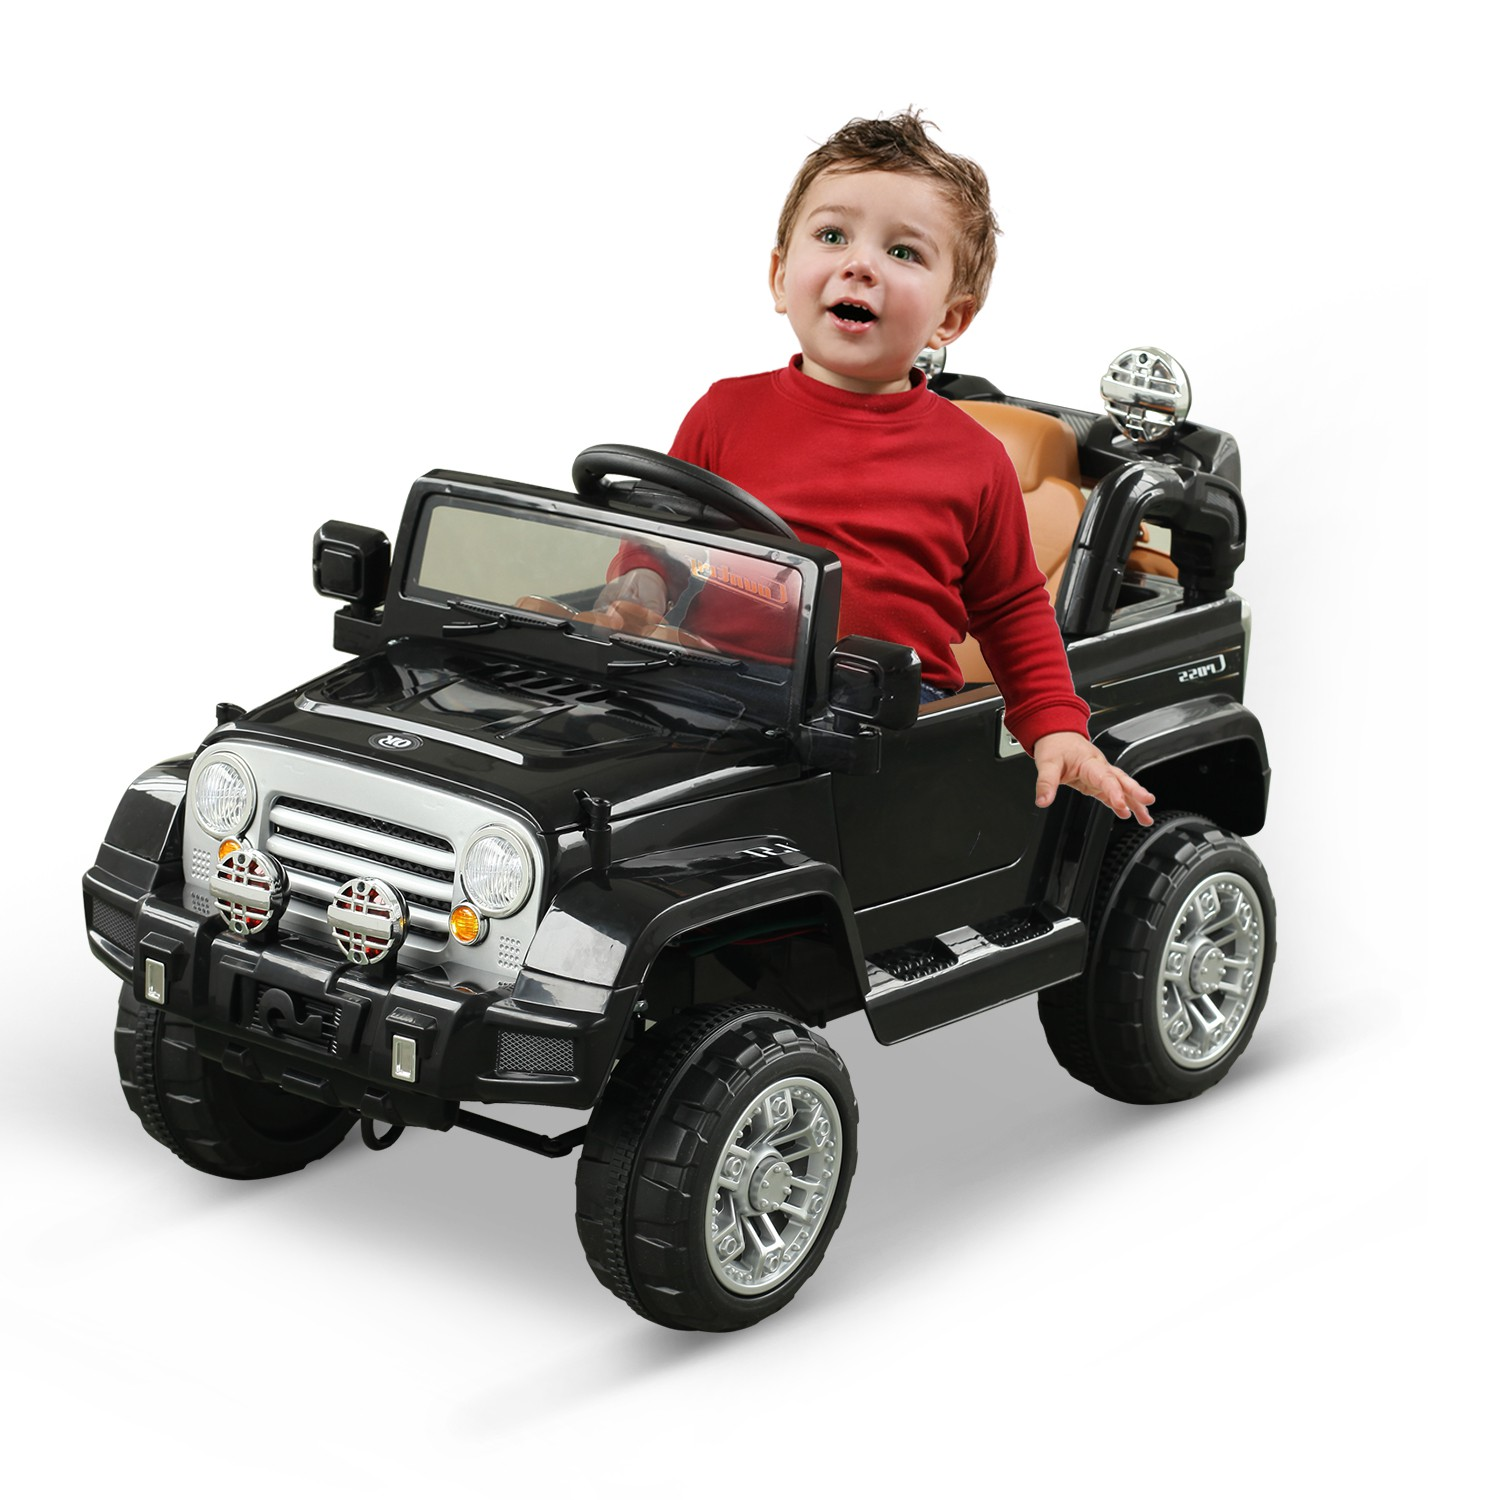 Jeep toddler Car Elegant Aosom 12v Kids Electric Ride On toy Truck Jeep Car with Remote